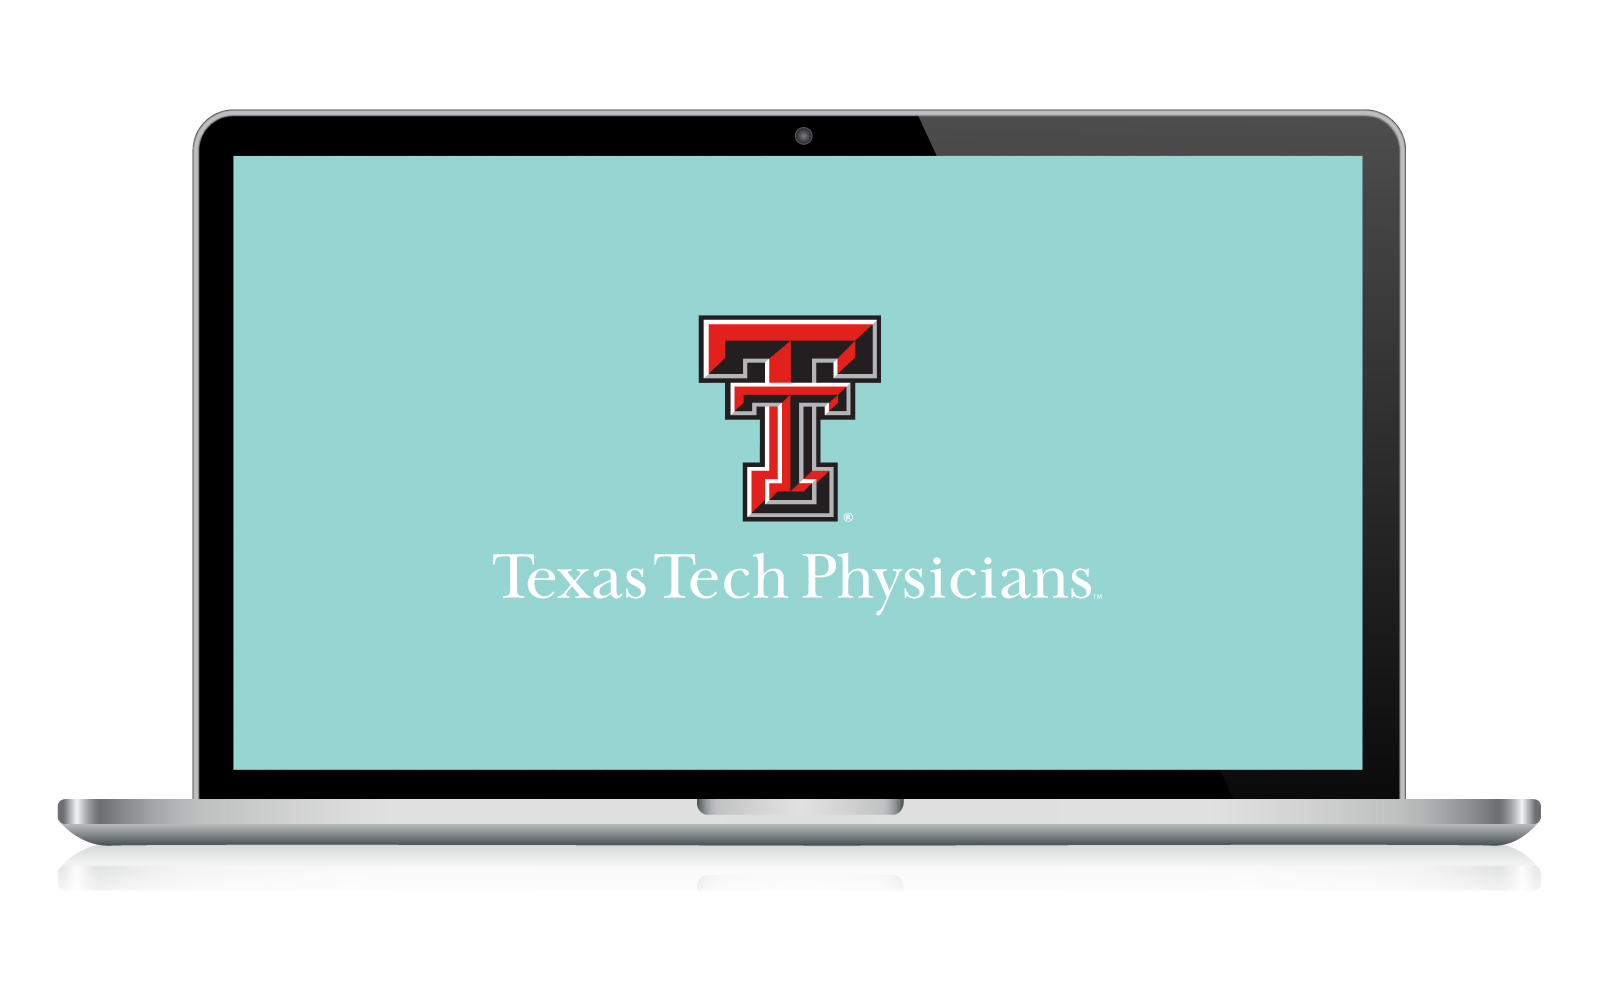 Laptop screen displaying Texas Tech Physicians presentation